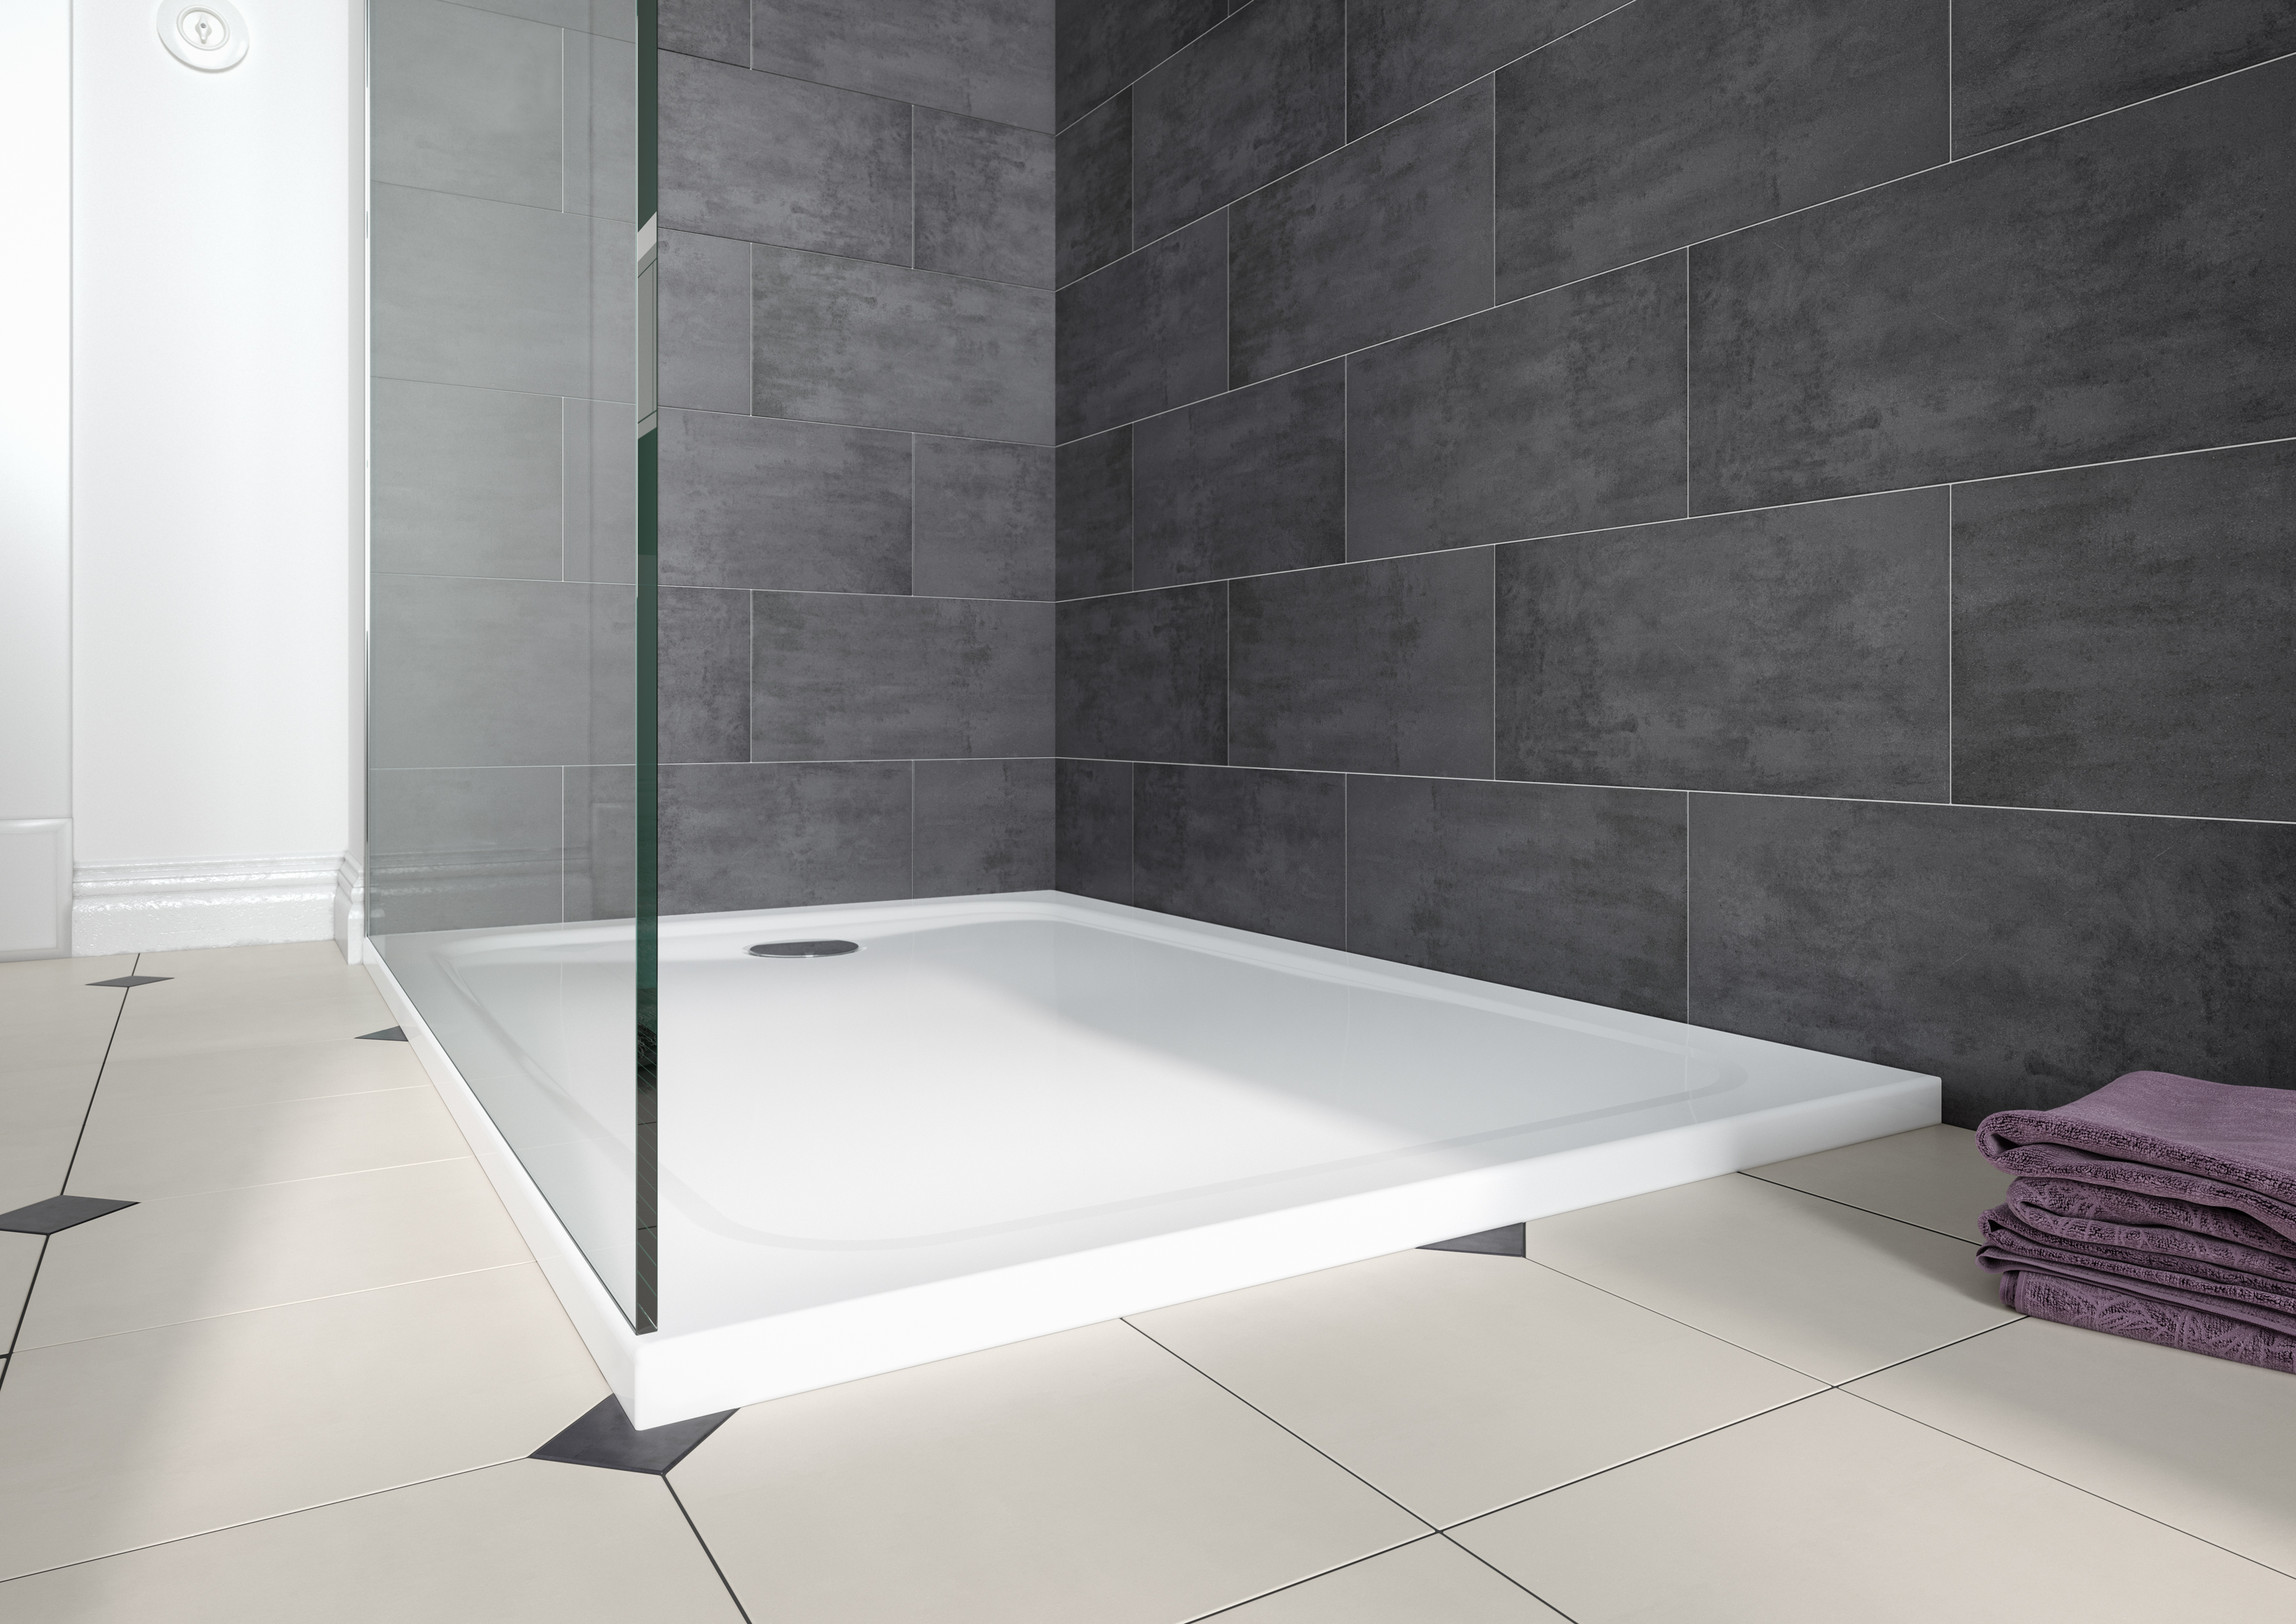 100,000 options for designing shower areas